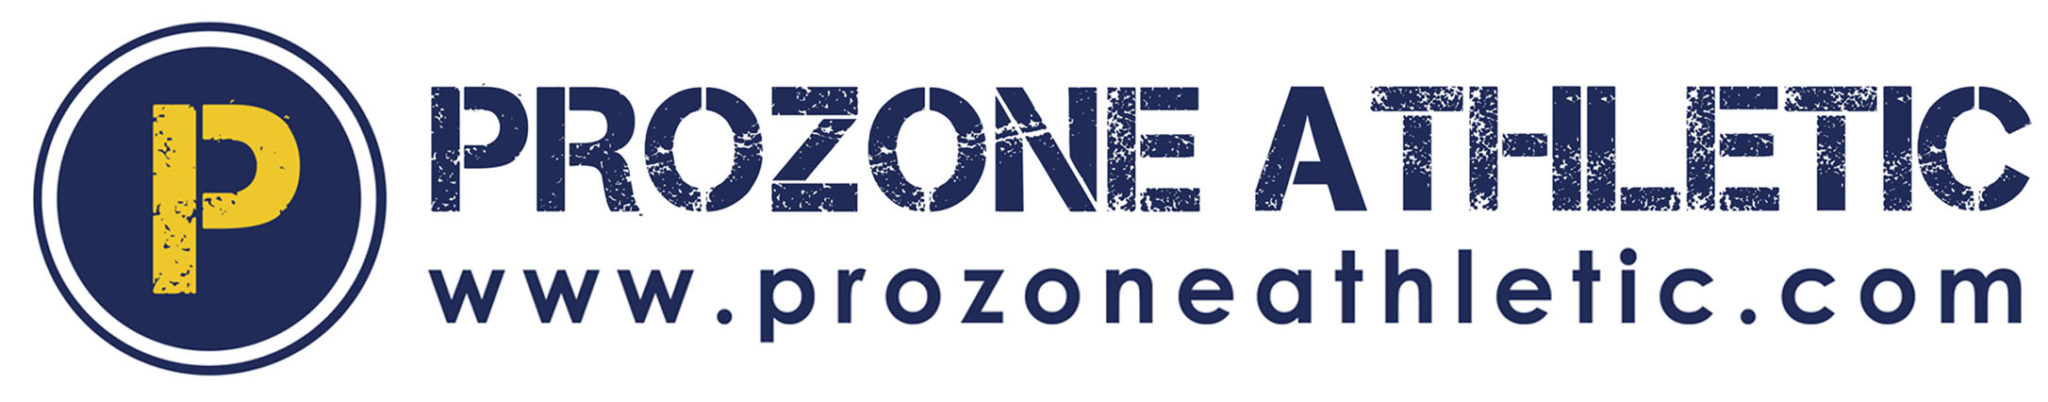 Prozone Athletic